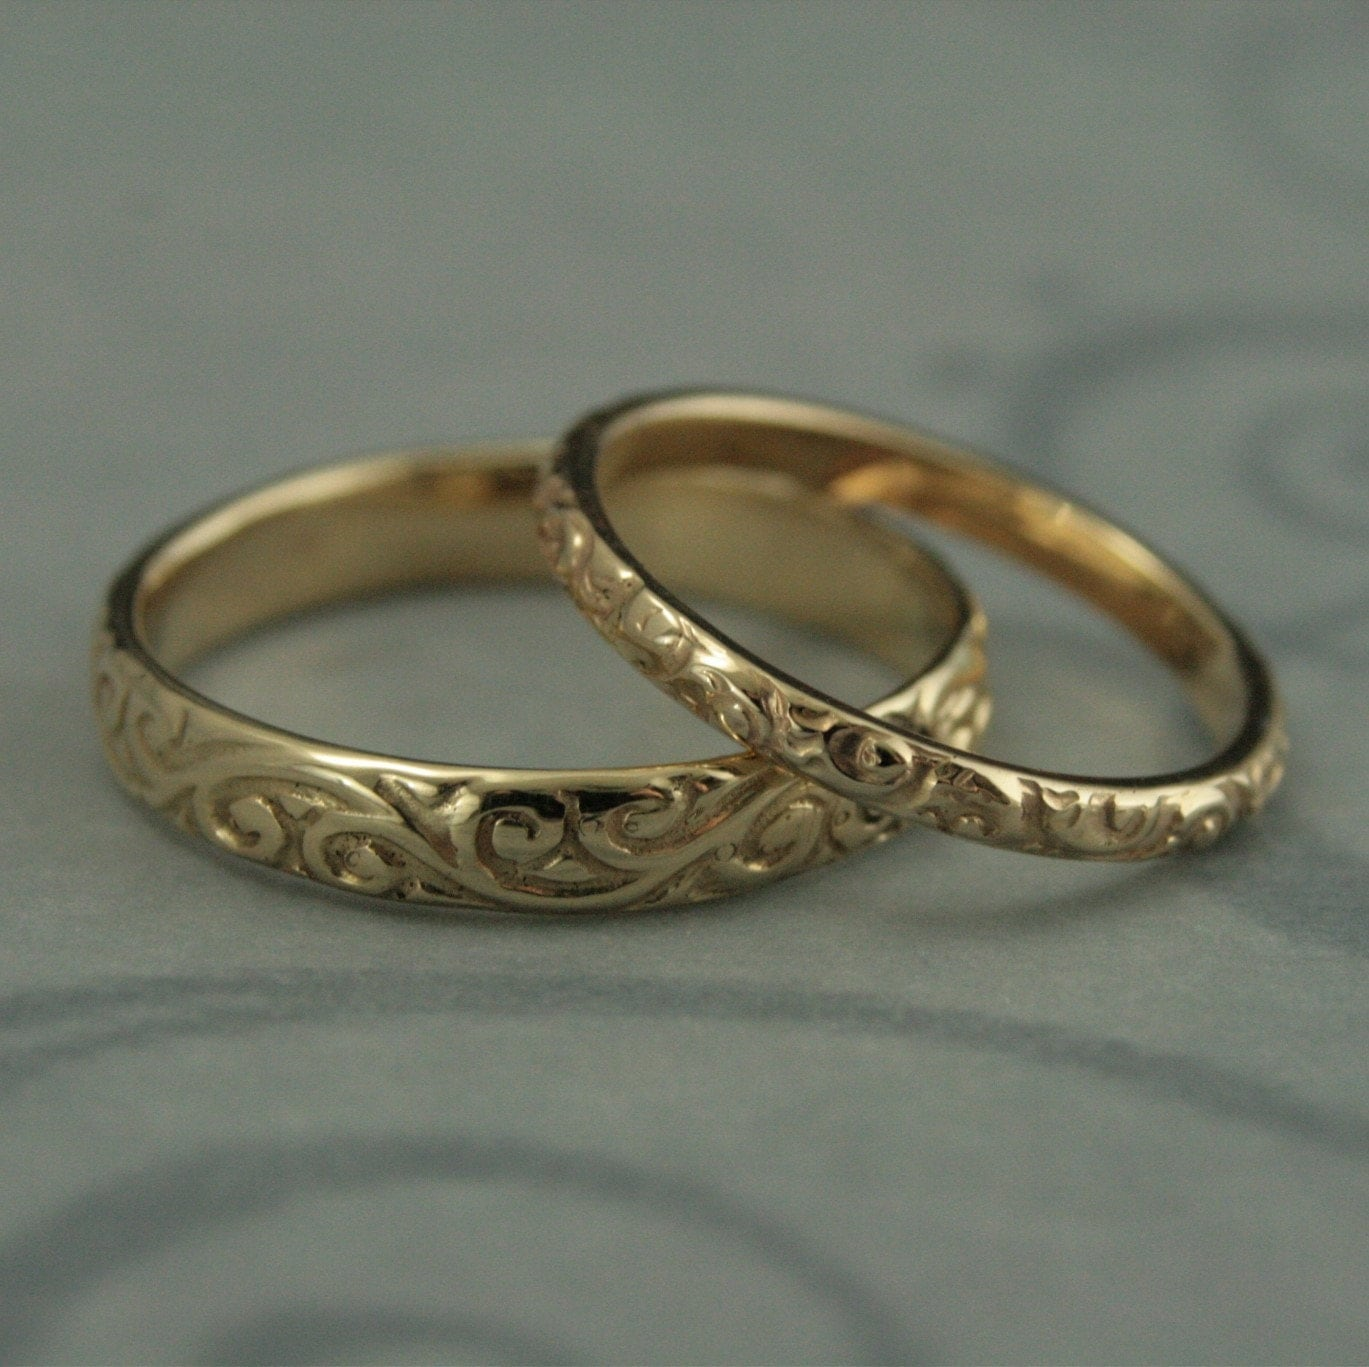 antique wedding band victorian wedding rings Patterned Wedding Band Set Vintage Style Wedding Rings His and Hers Set Antique Style Rings 14K Gold Rococo Flourish Set His and Hers Bands